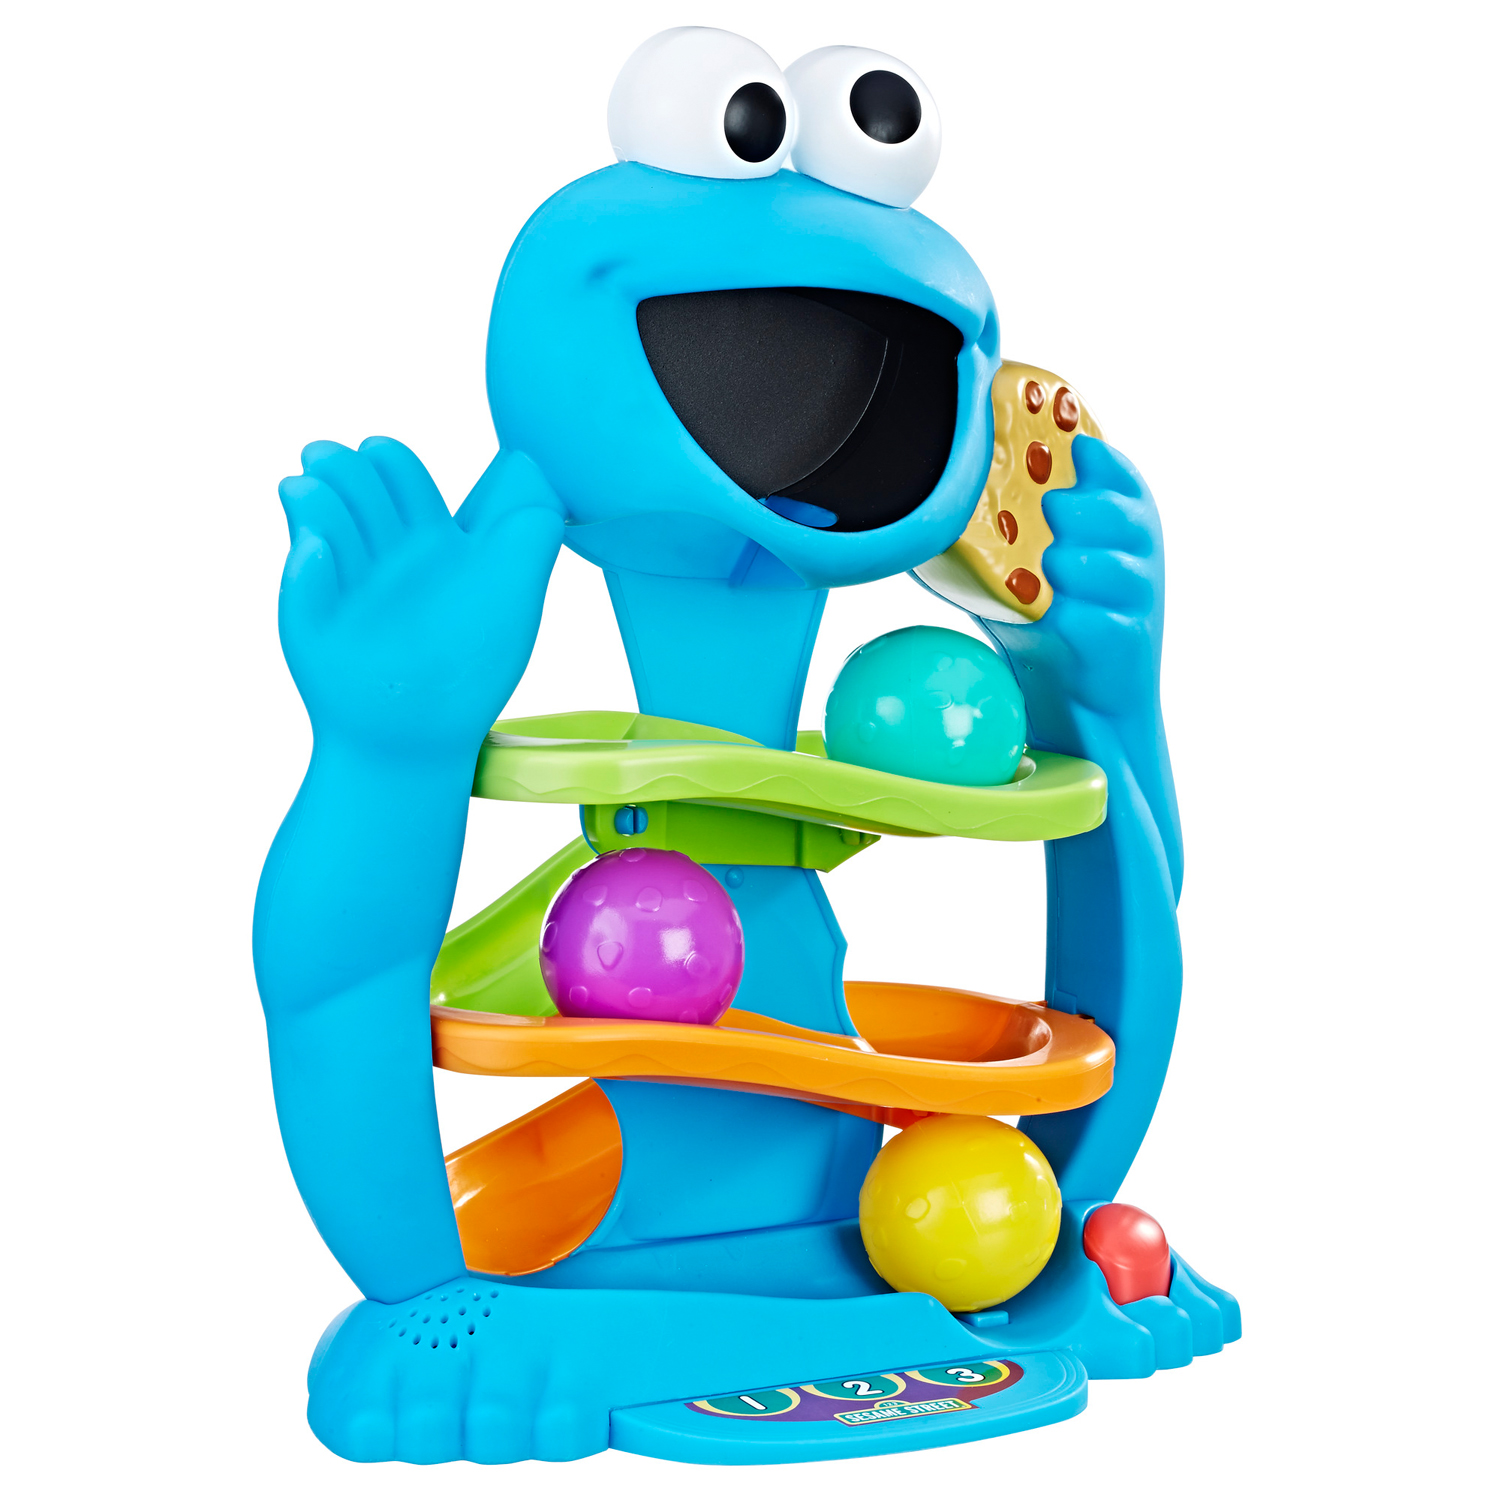 Playskool Friends Sesame Street Cookie Monster's Drop & Roll by Hasbro